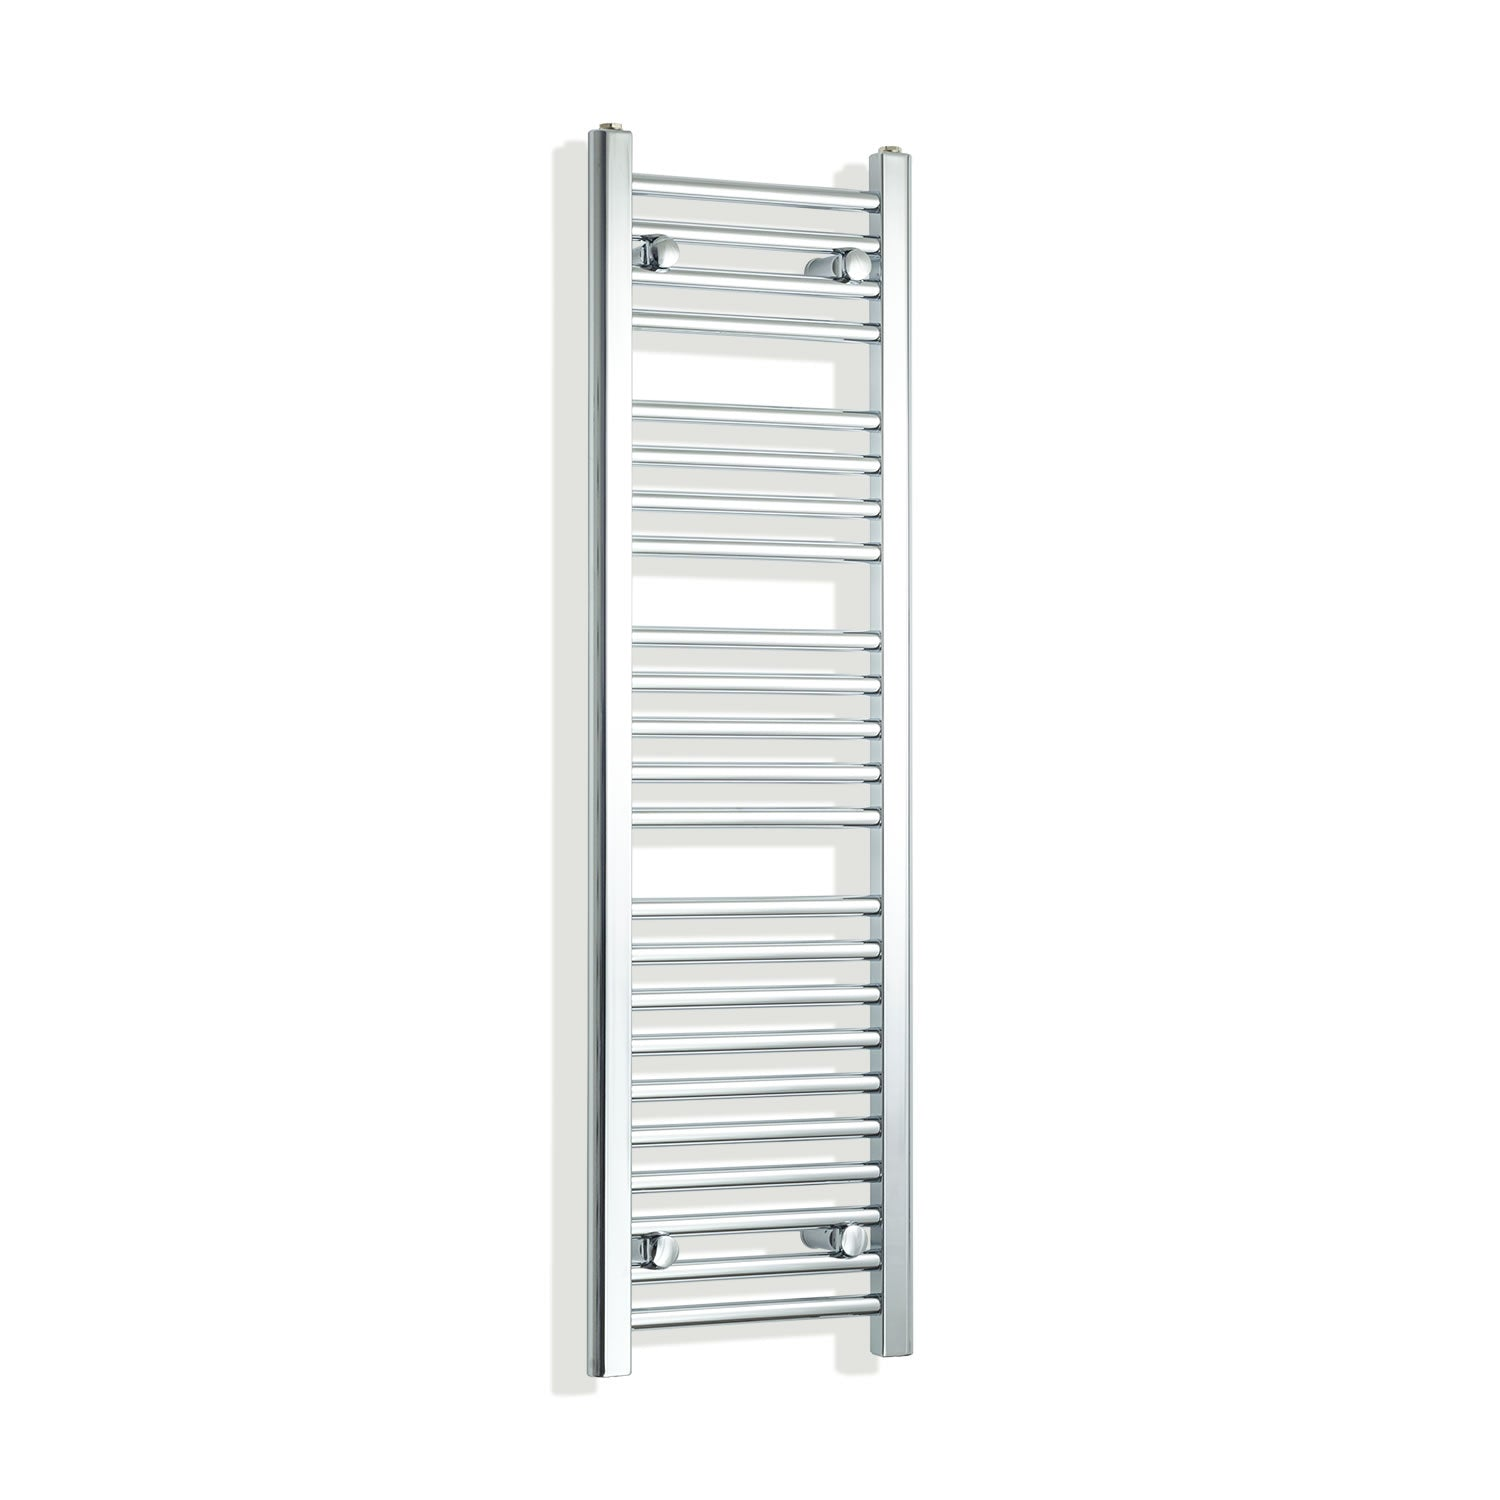 300mm Wide 1400mm High Flat Chrome Heated Towel Rail Radiator,Towel Rail Only